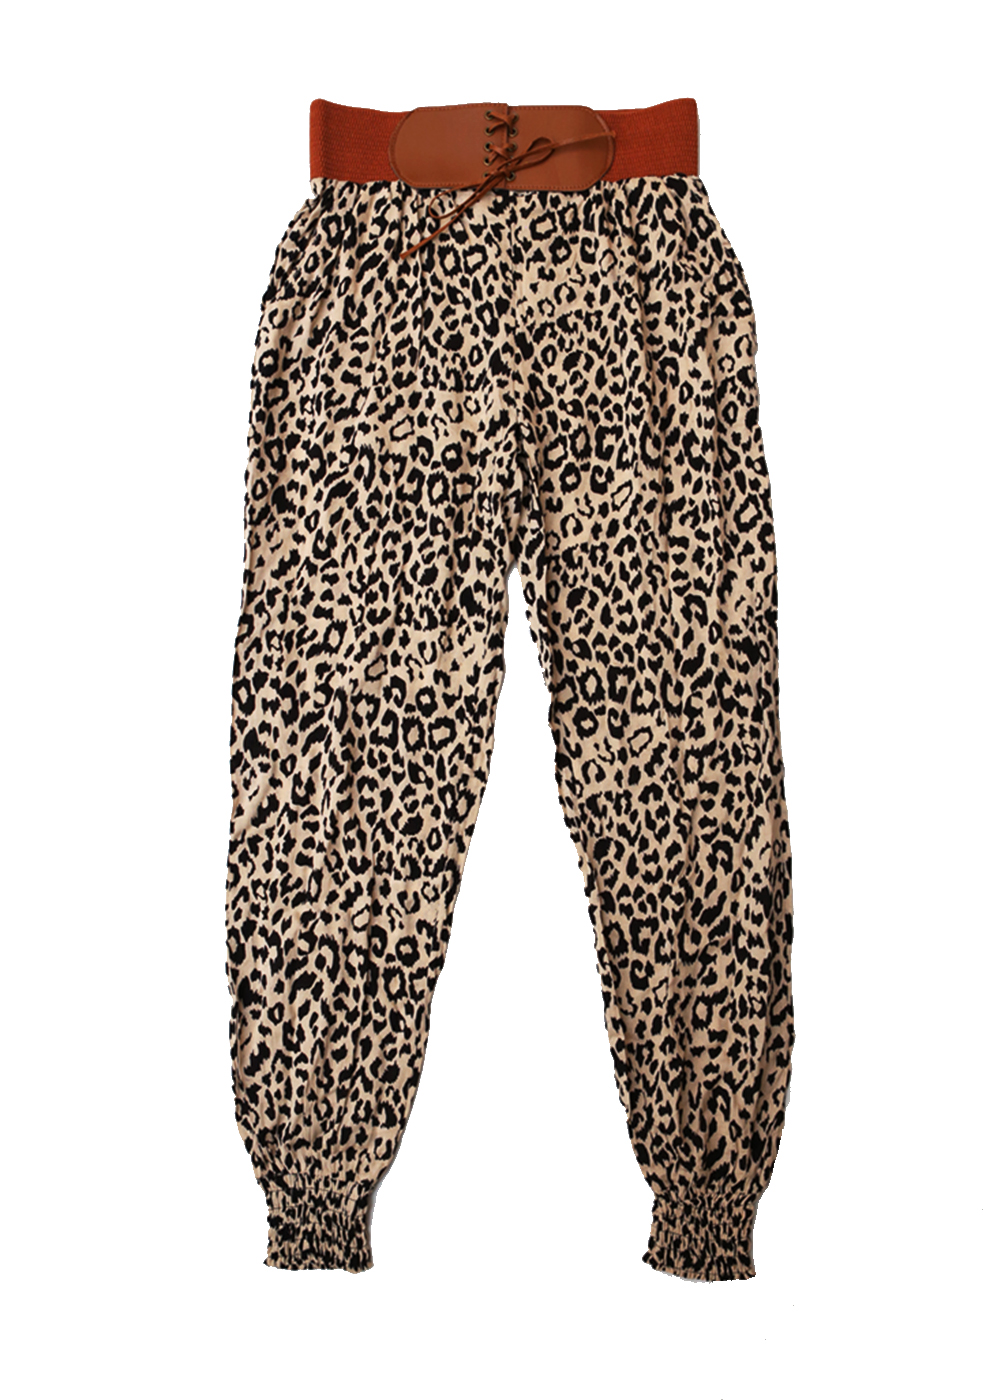 how to wear leopard print pants